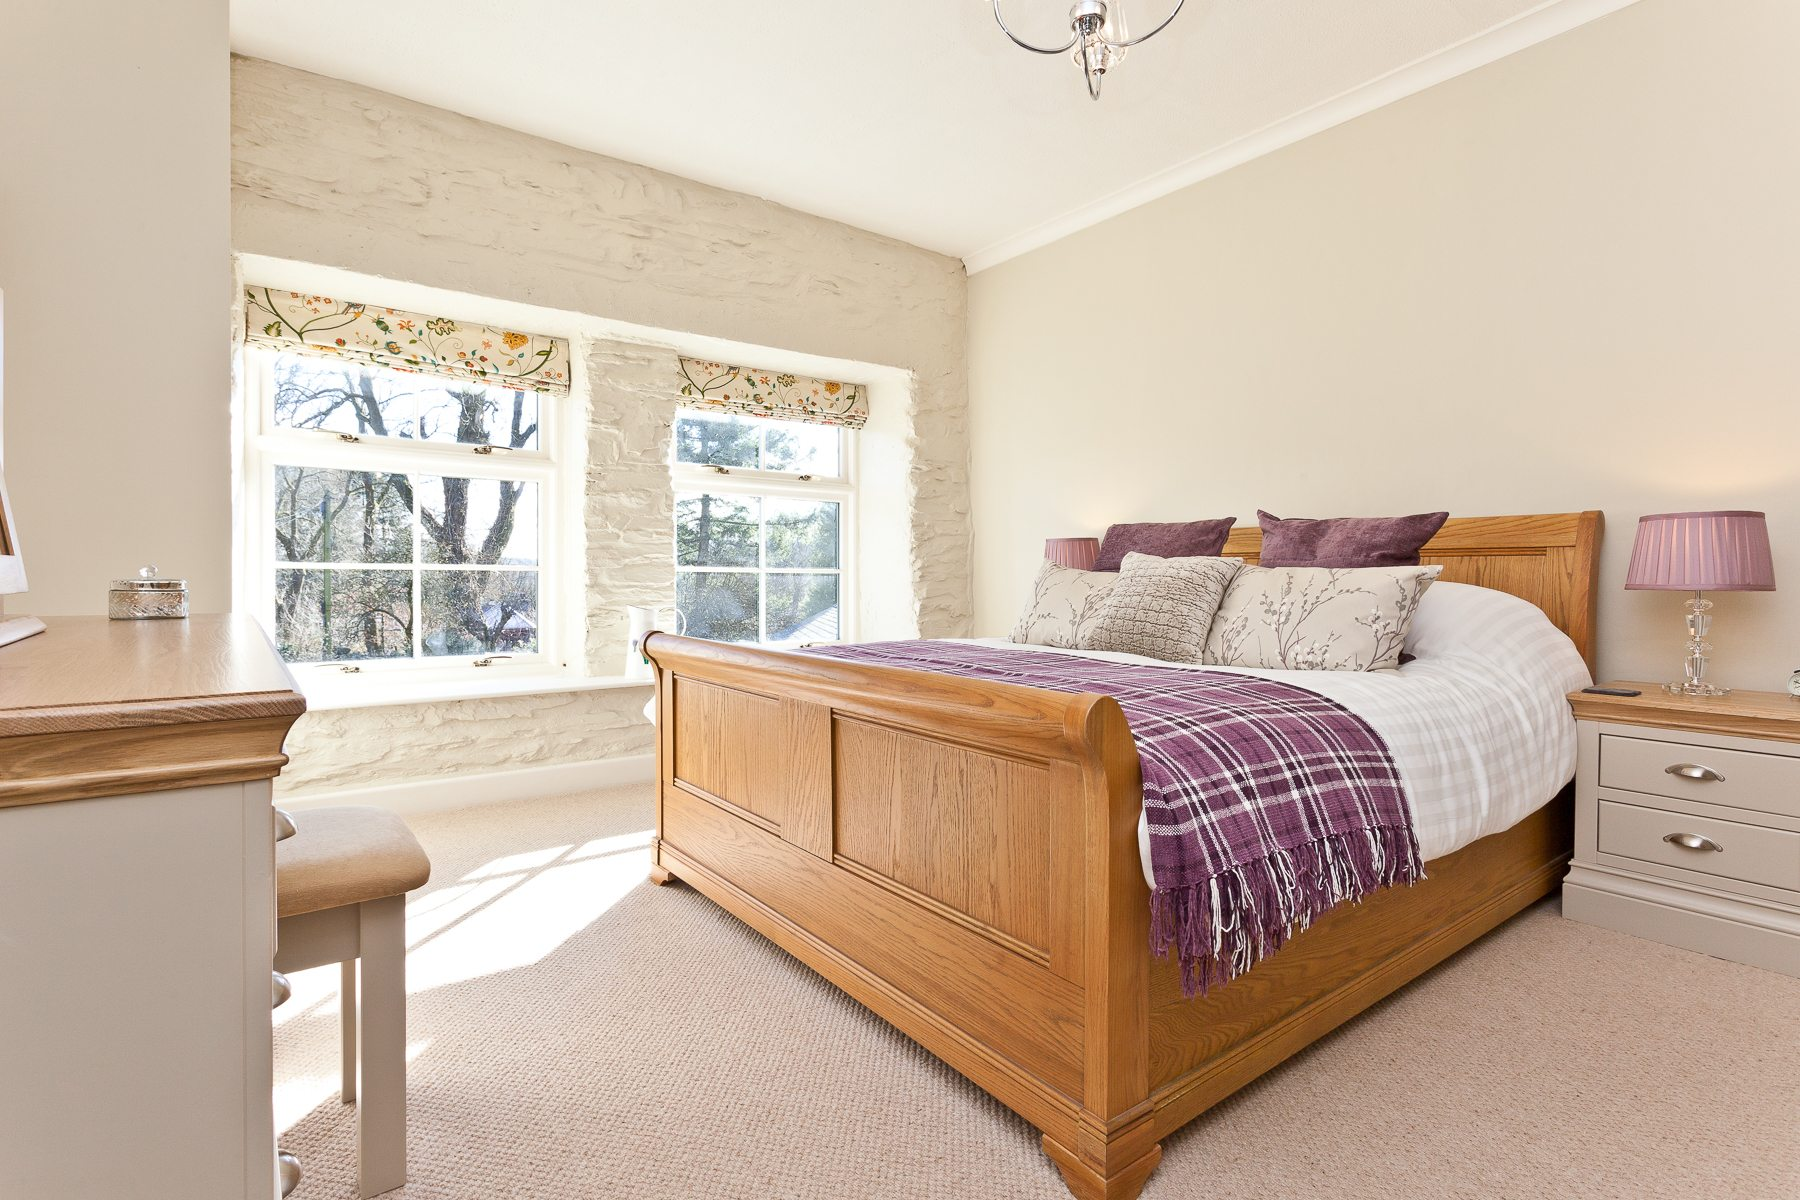 One of the King Size Bedrooms at Charcoal House